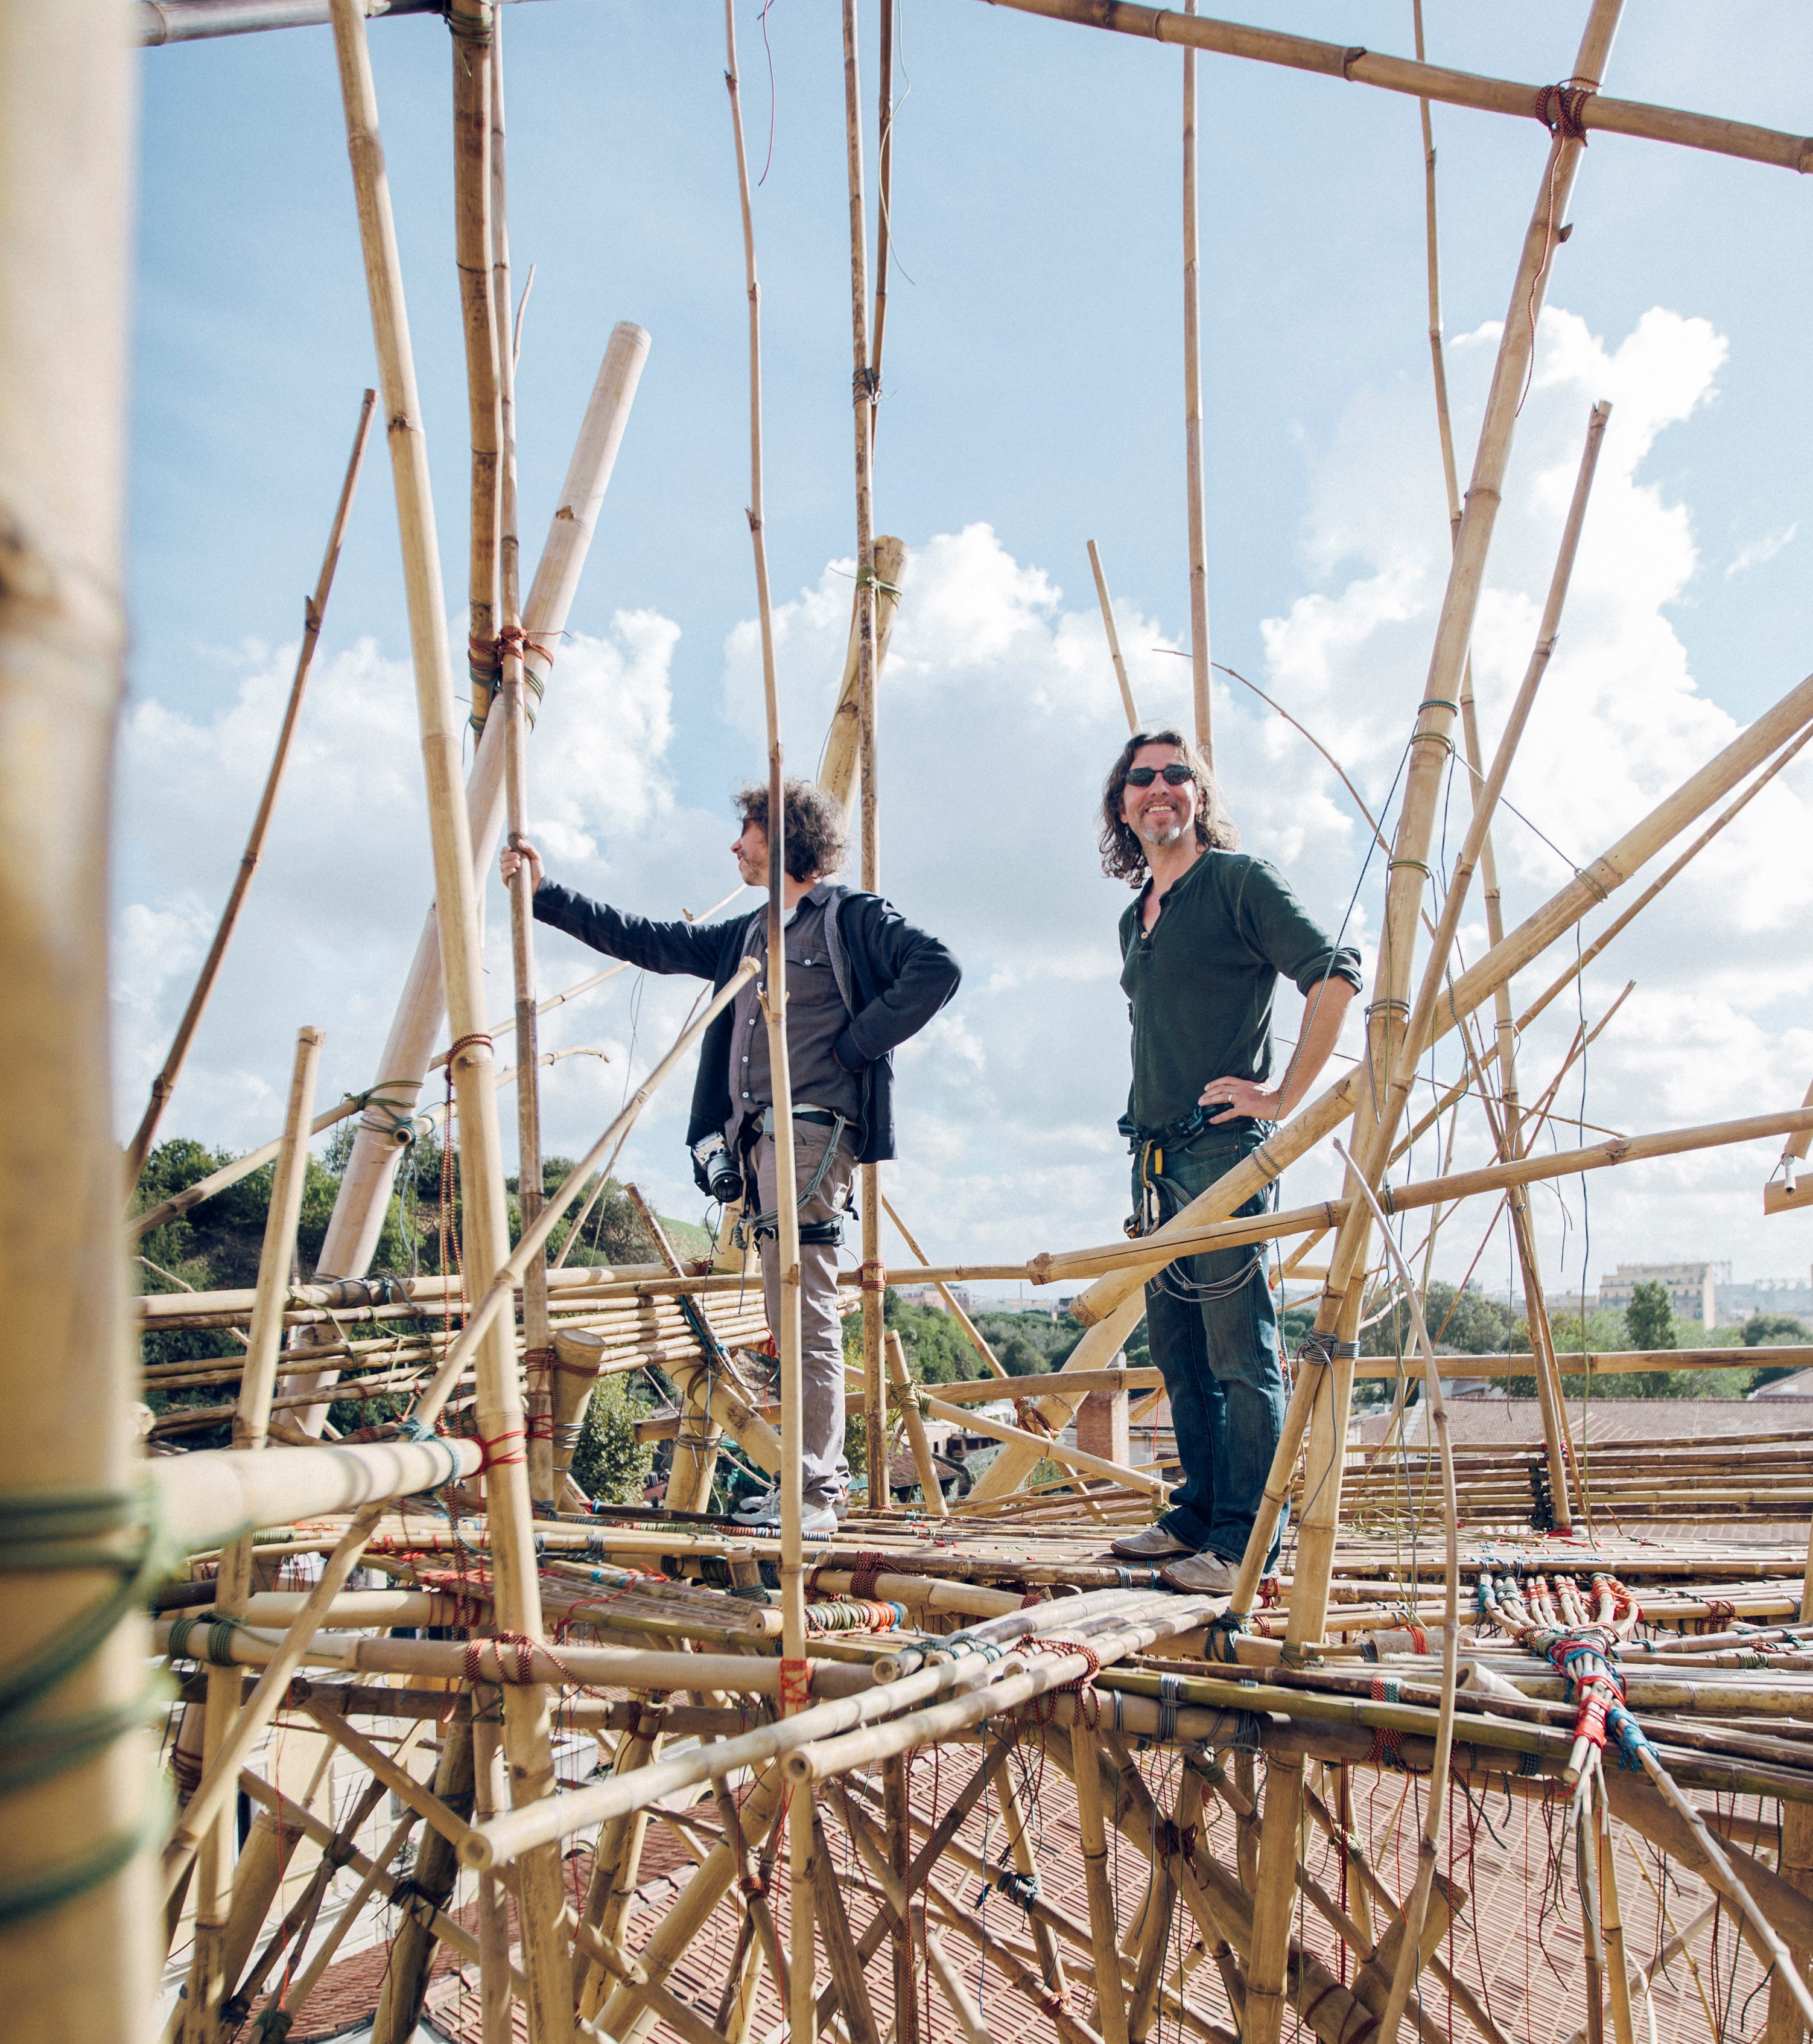 TEMPORARY Big Bambú (Mike & Doug Starn in Rome 2012)